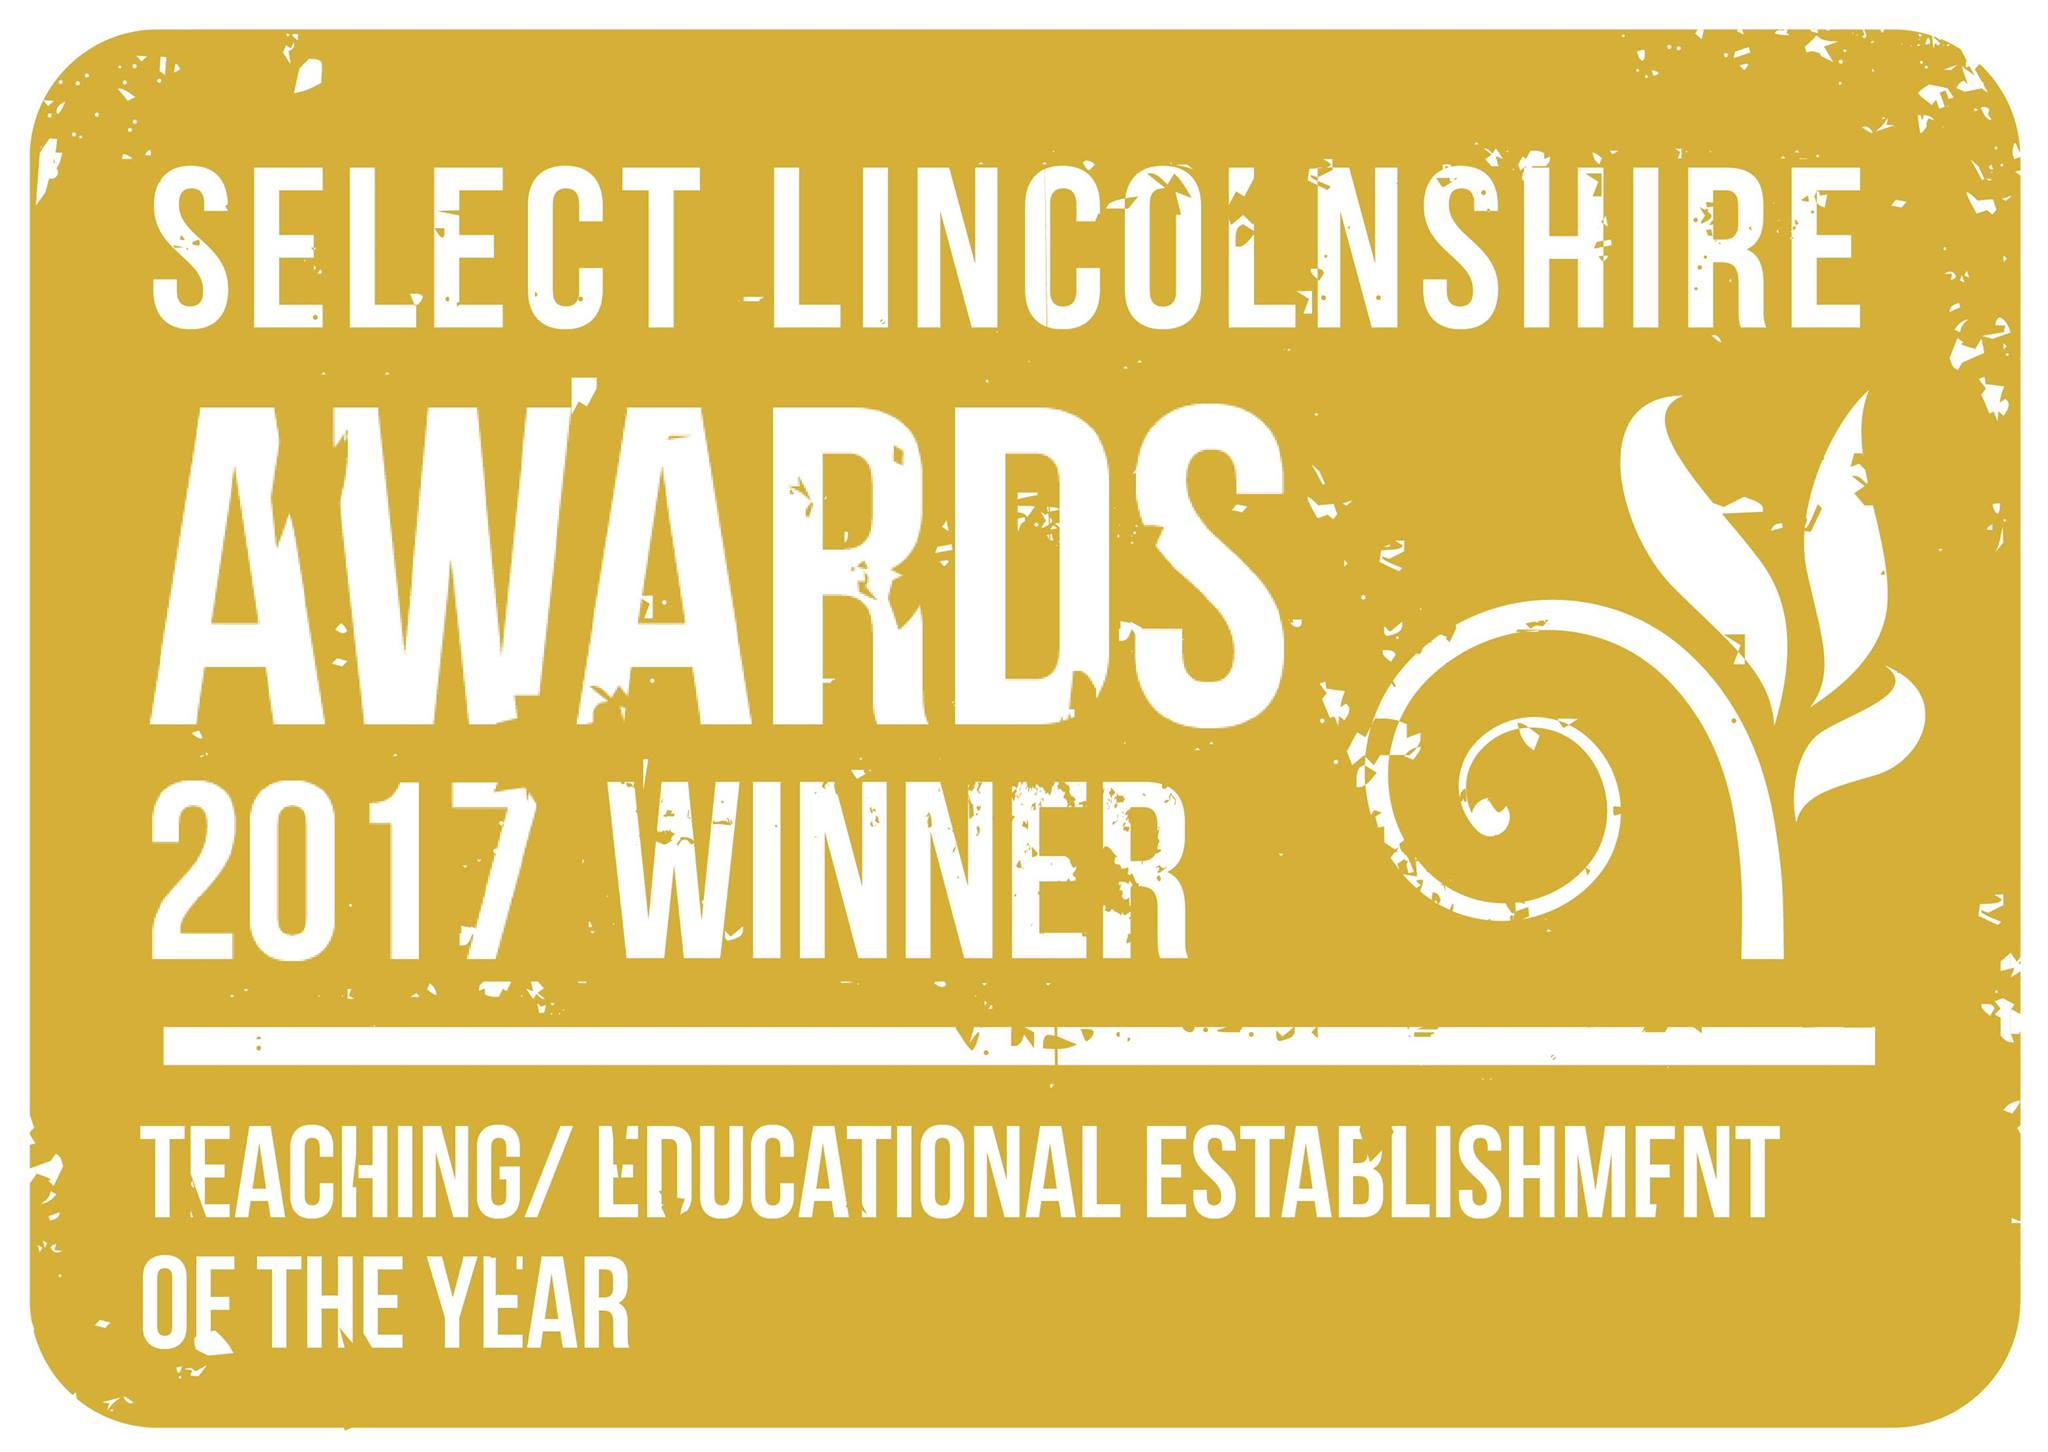 Select Lincolnshire Awards 2017 Winner